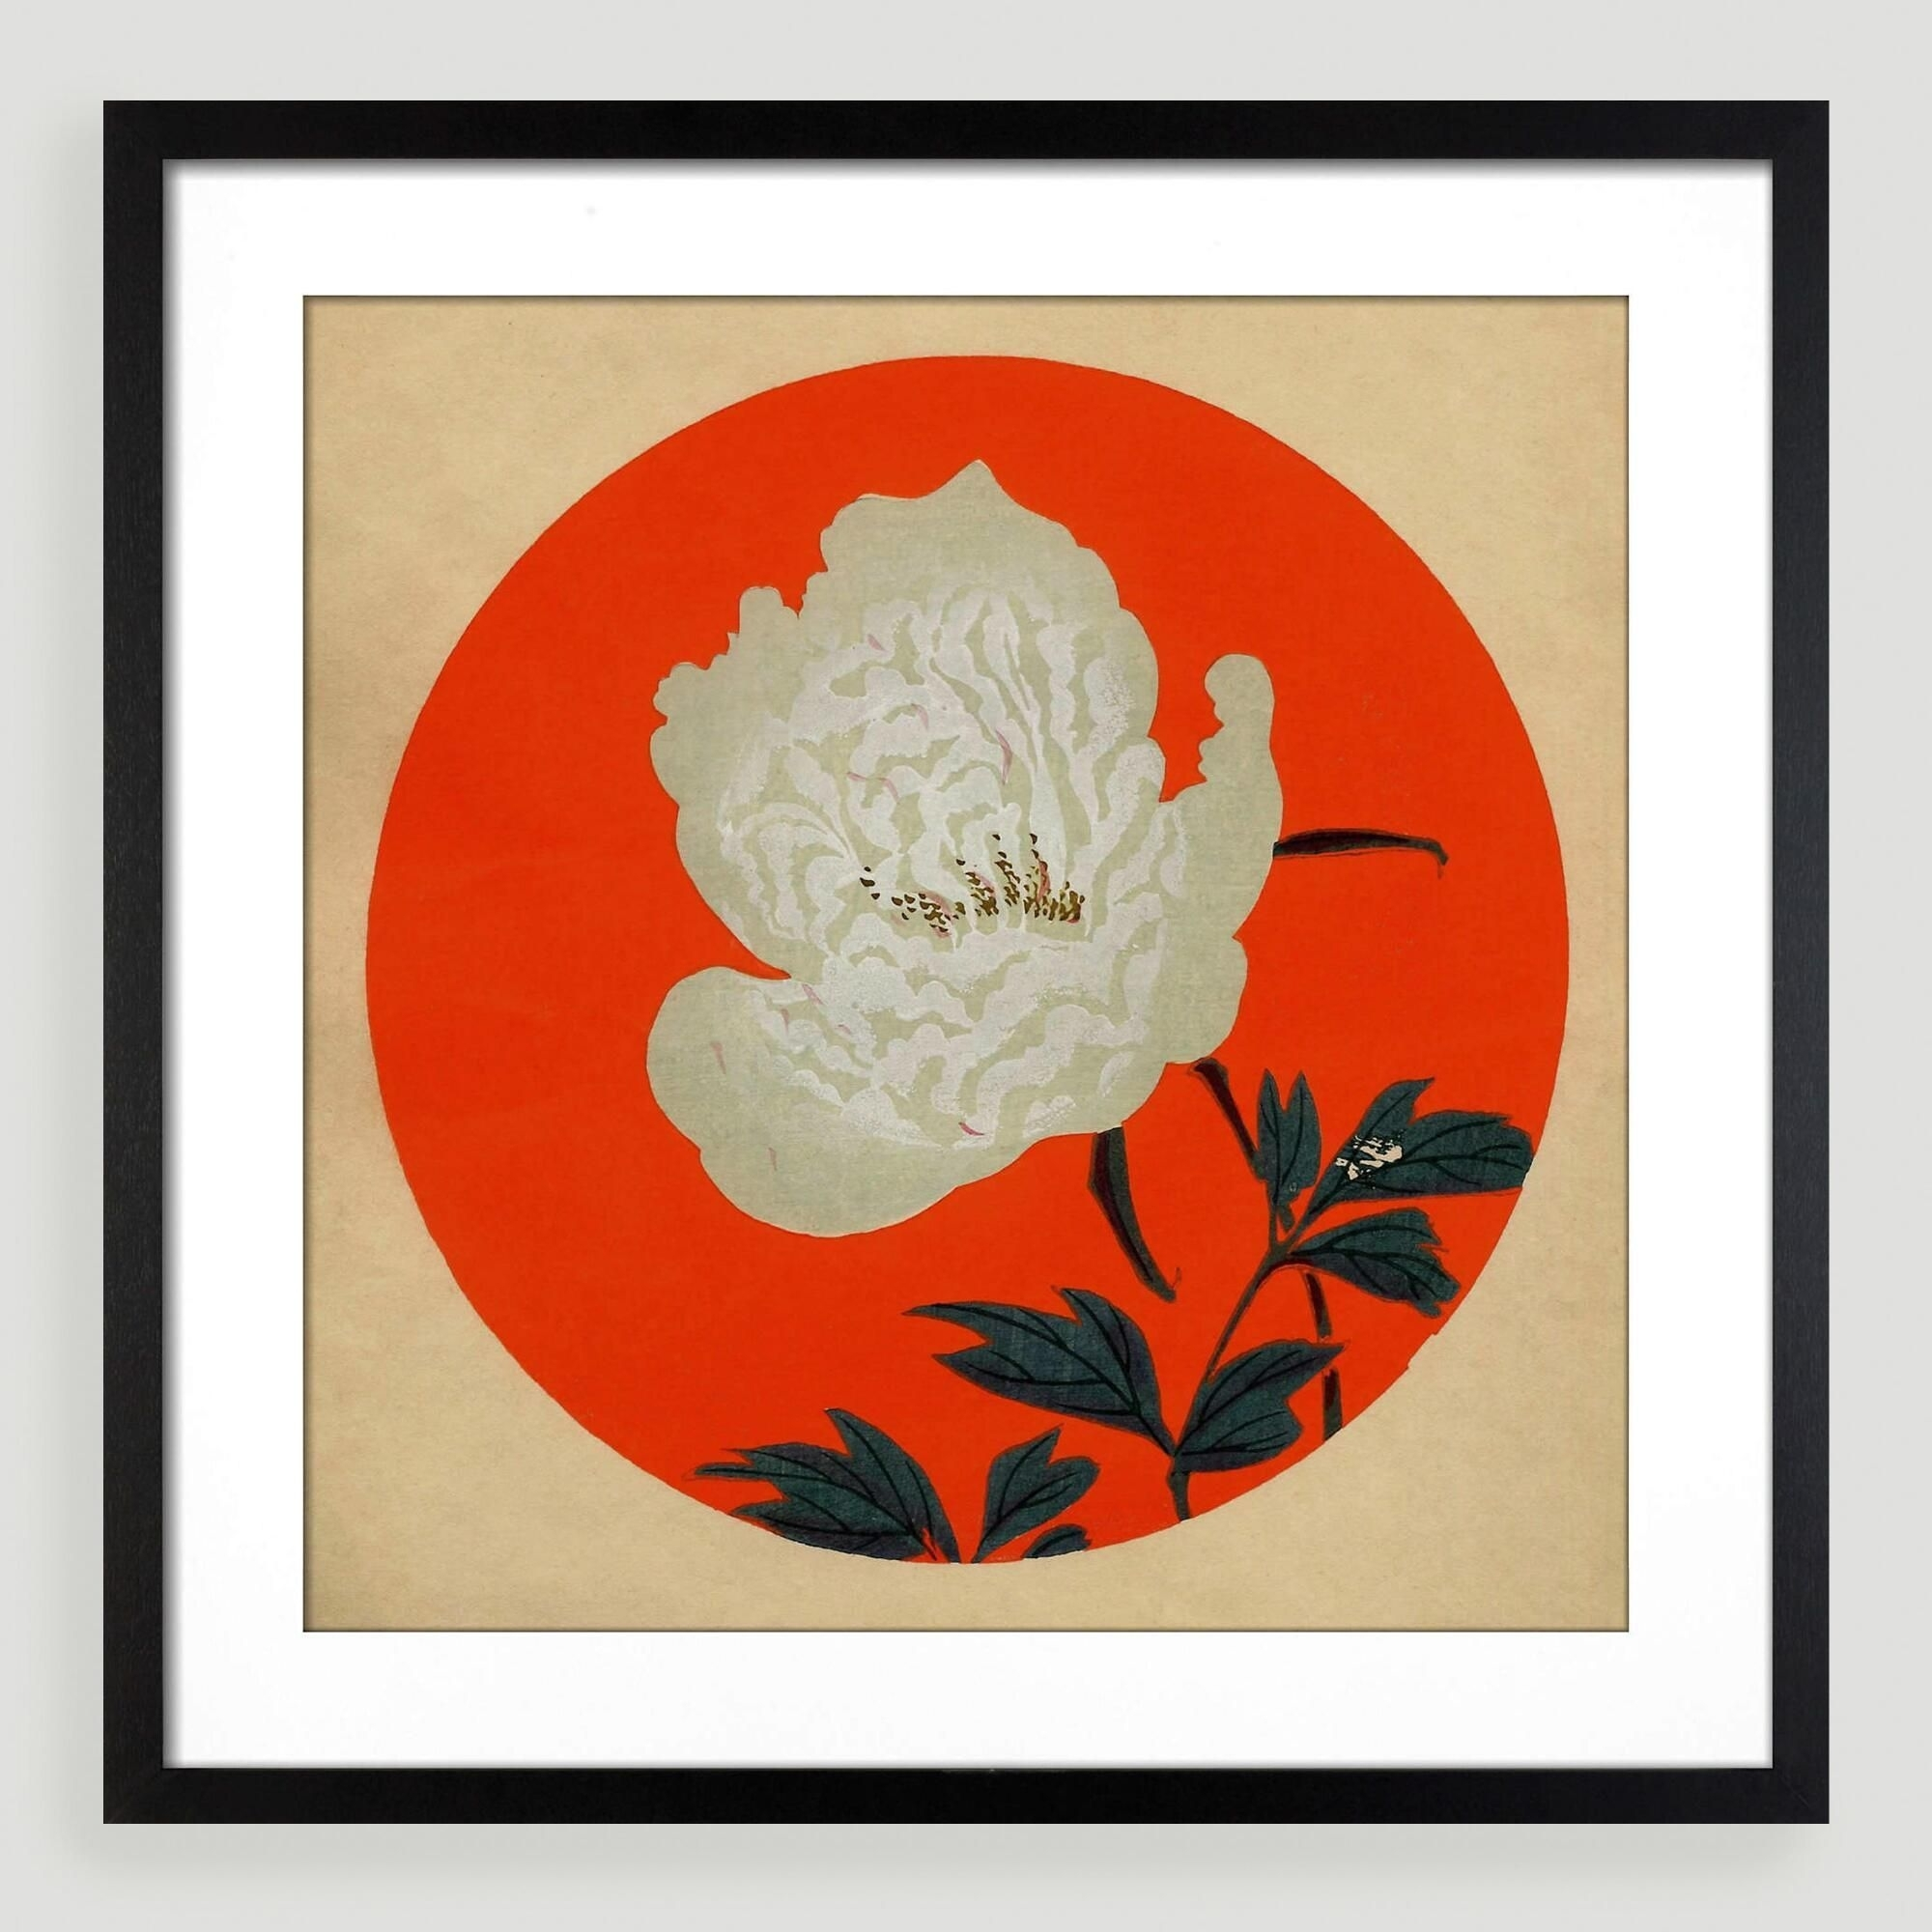 18th Century Japanese Wall Art | World Market | Home Goods, Decor Within Best And Newest World Market Wall Art (View 16 of 20)